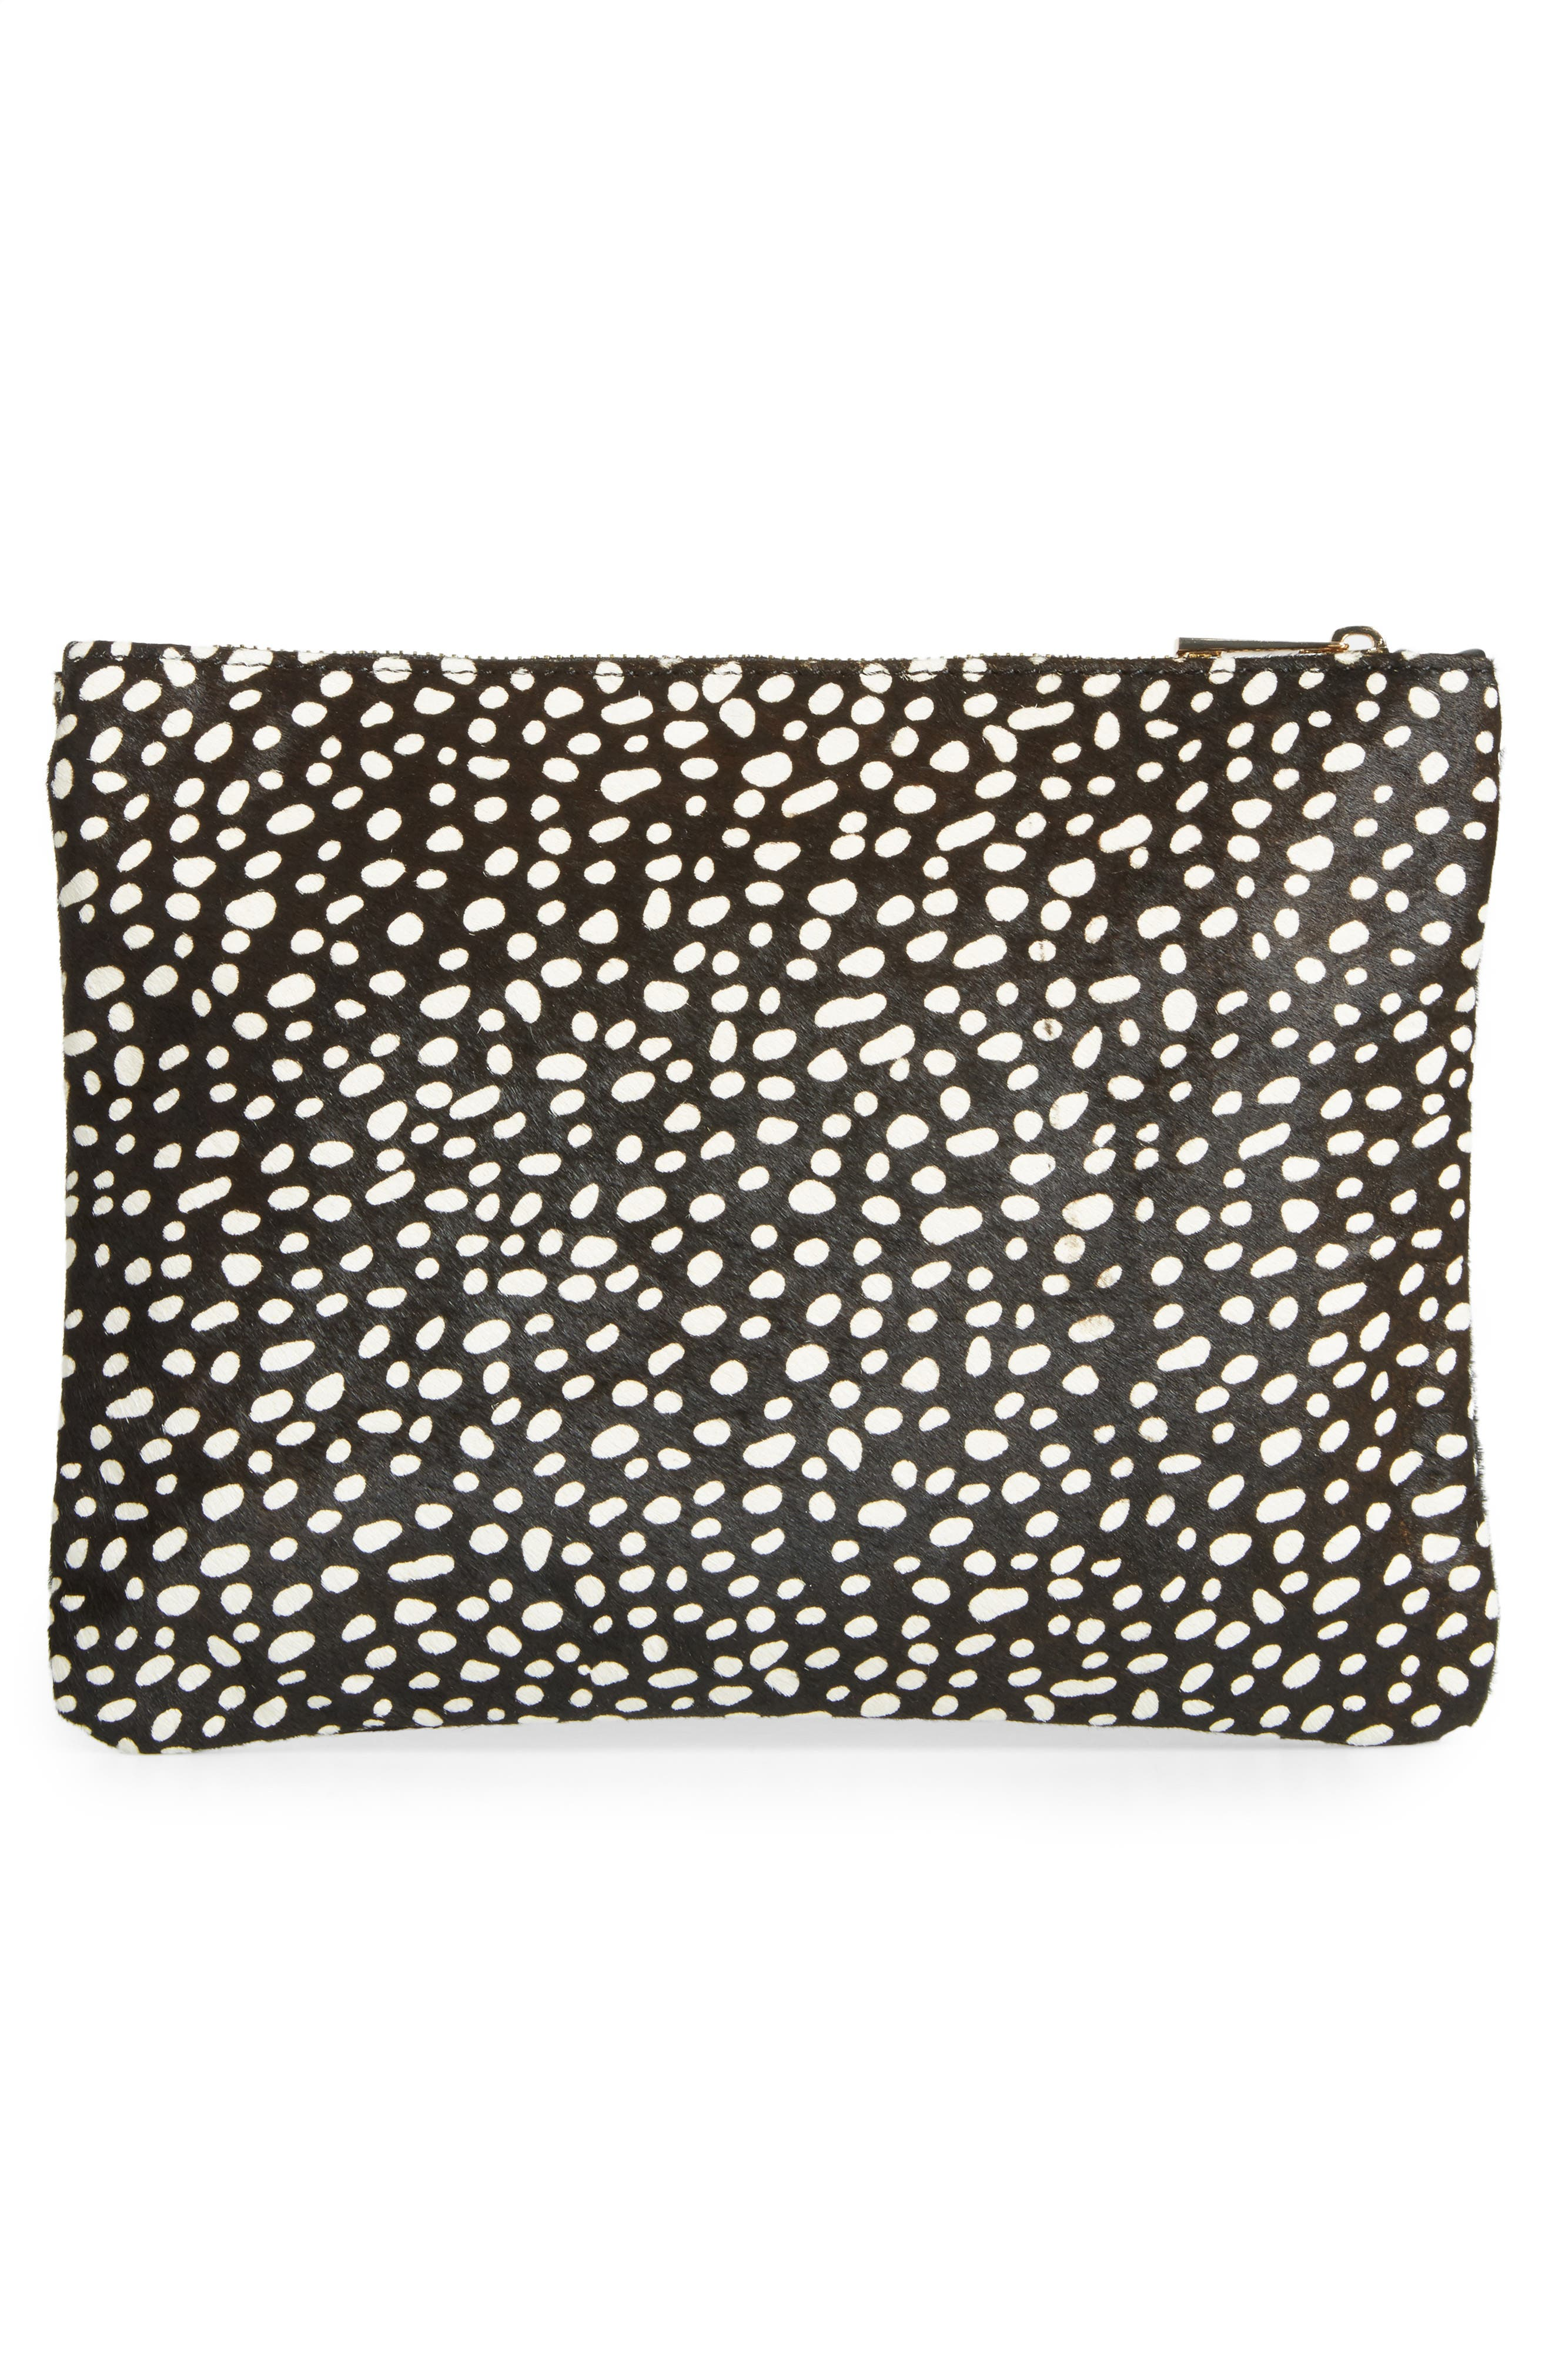 SOLE SOCIETY, 'Dolce' Genuine Calf Hair Clutch, Alternate thumbnail 3, color, 001